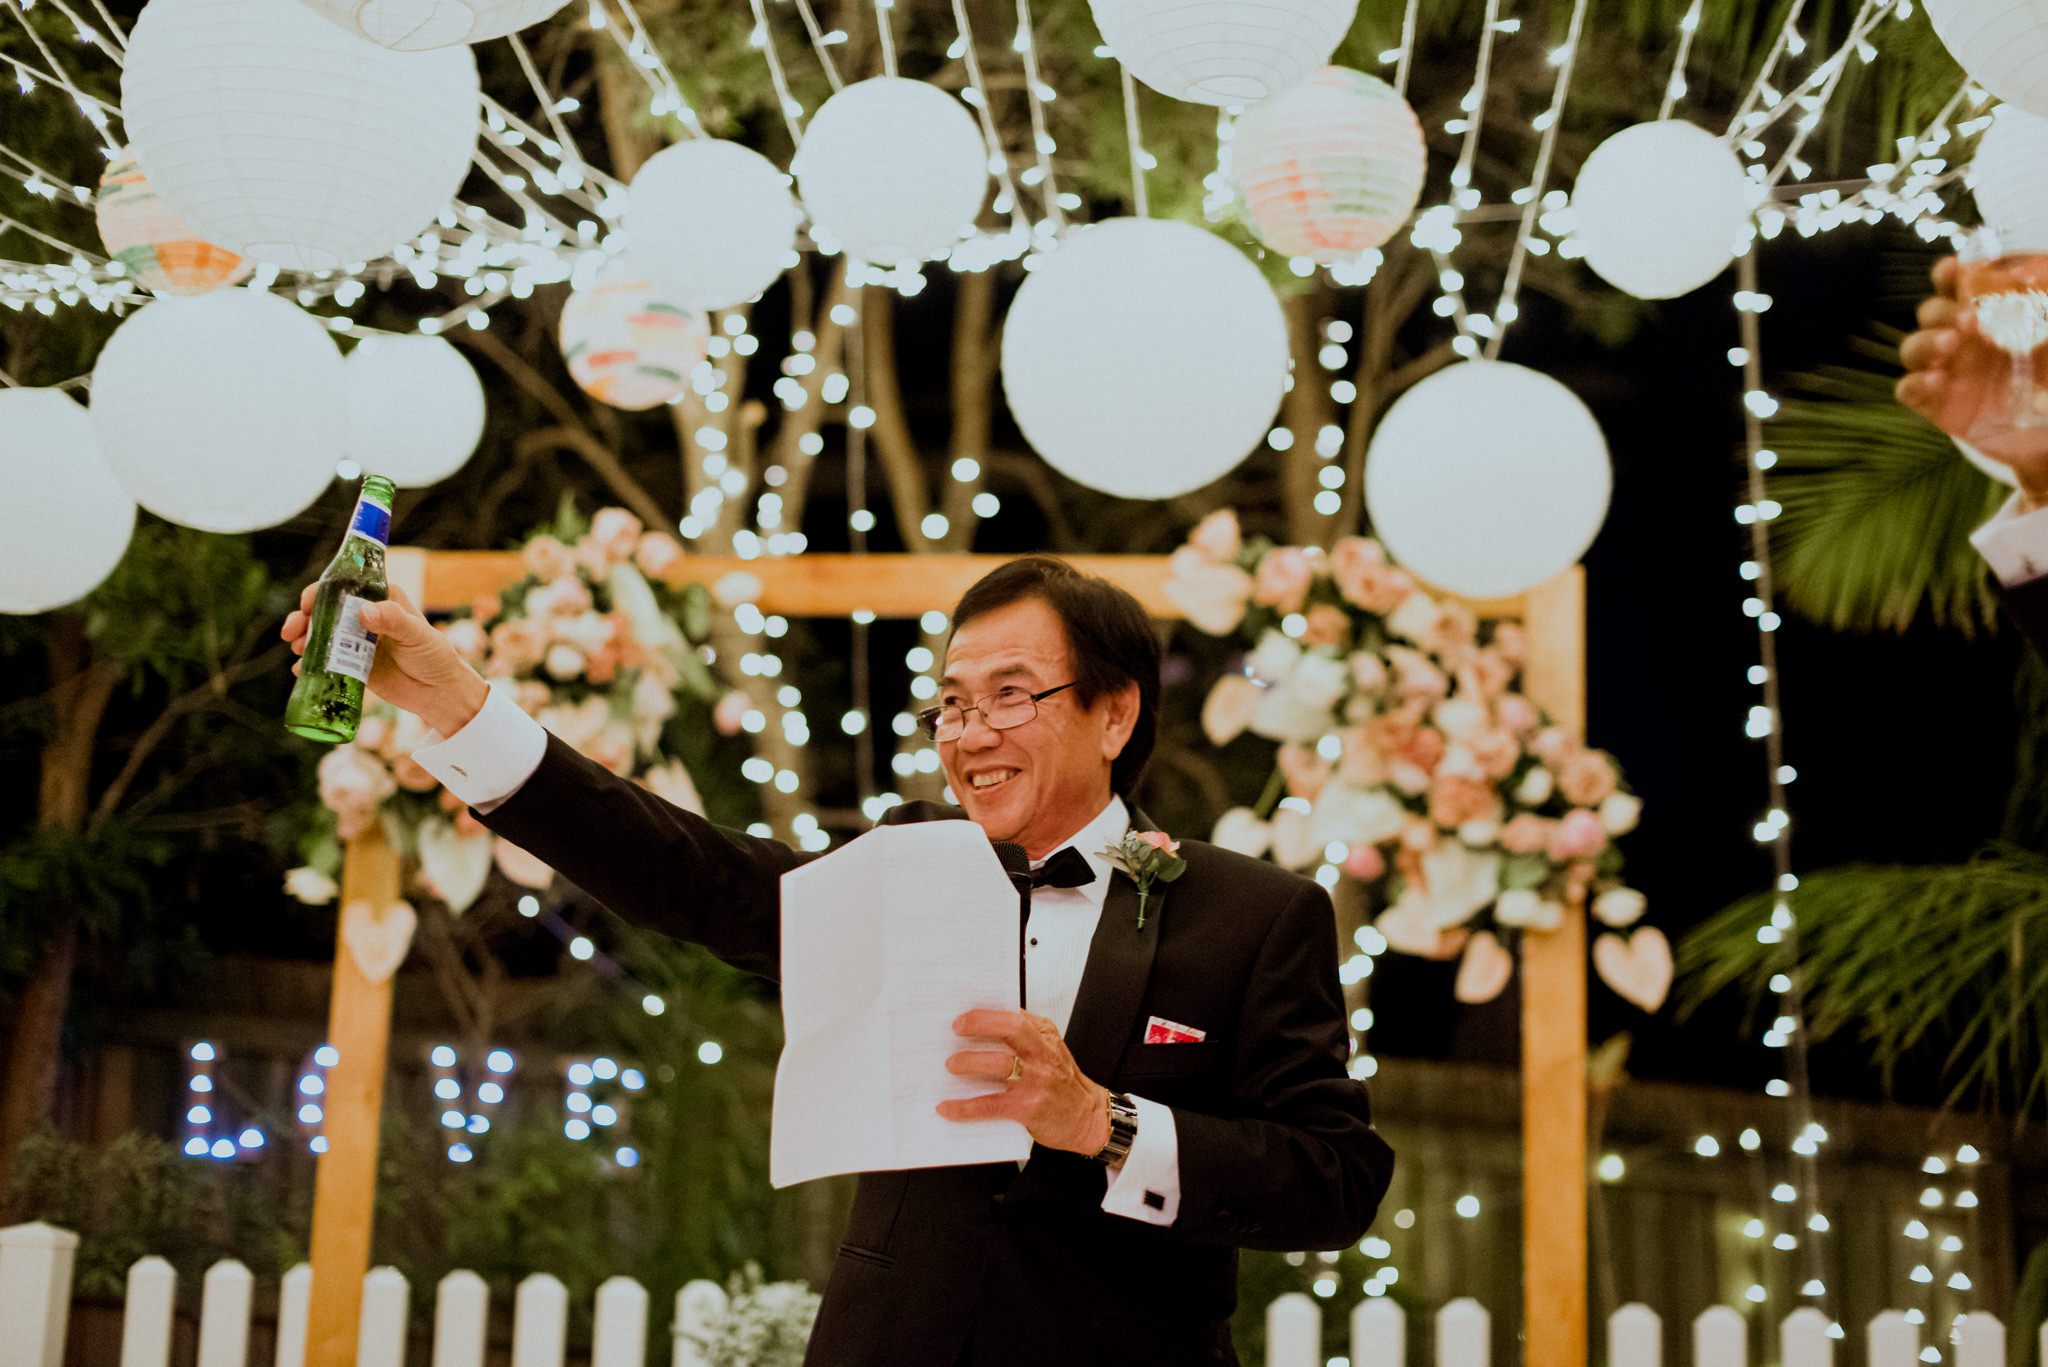 Man gives speech and toasts underneath circular lanterns and fairy lights